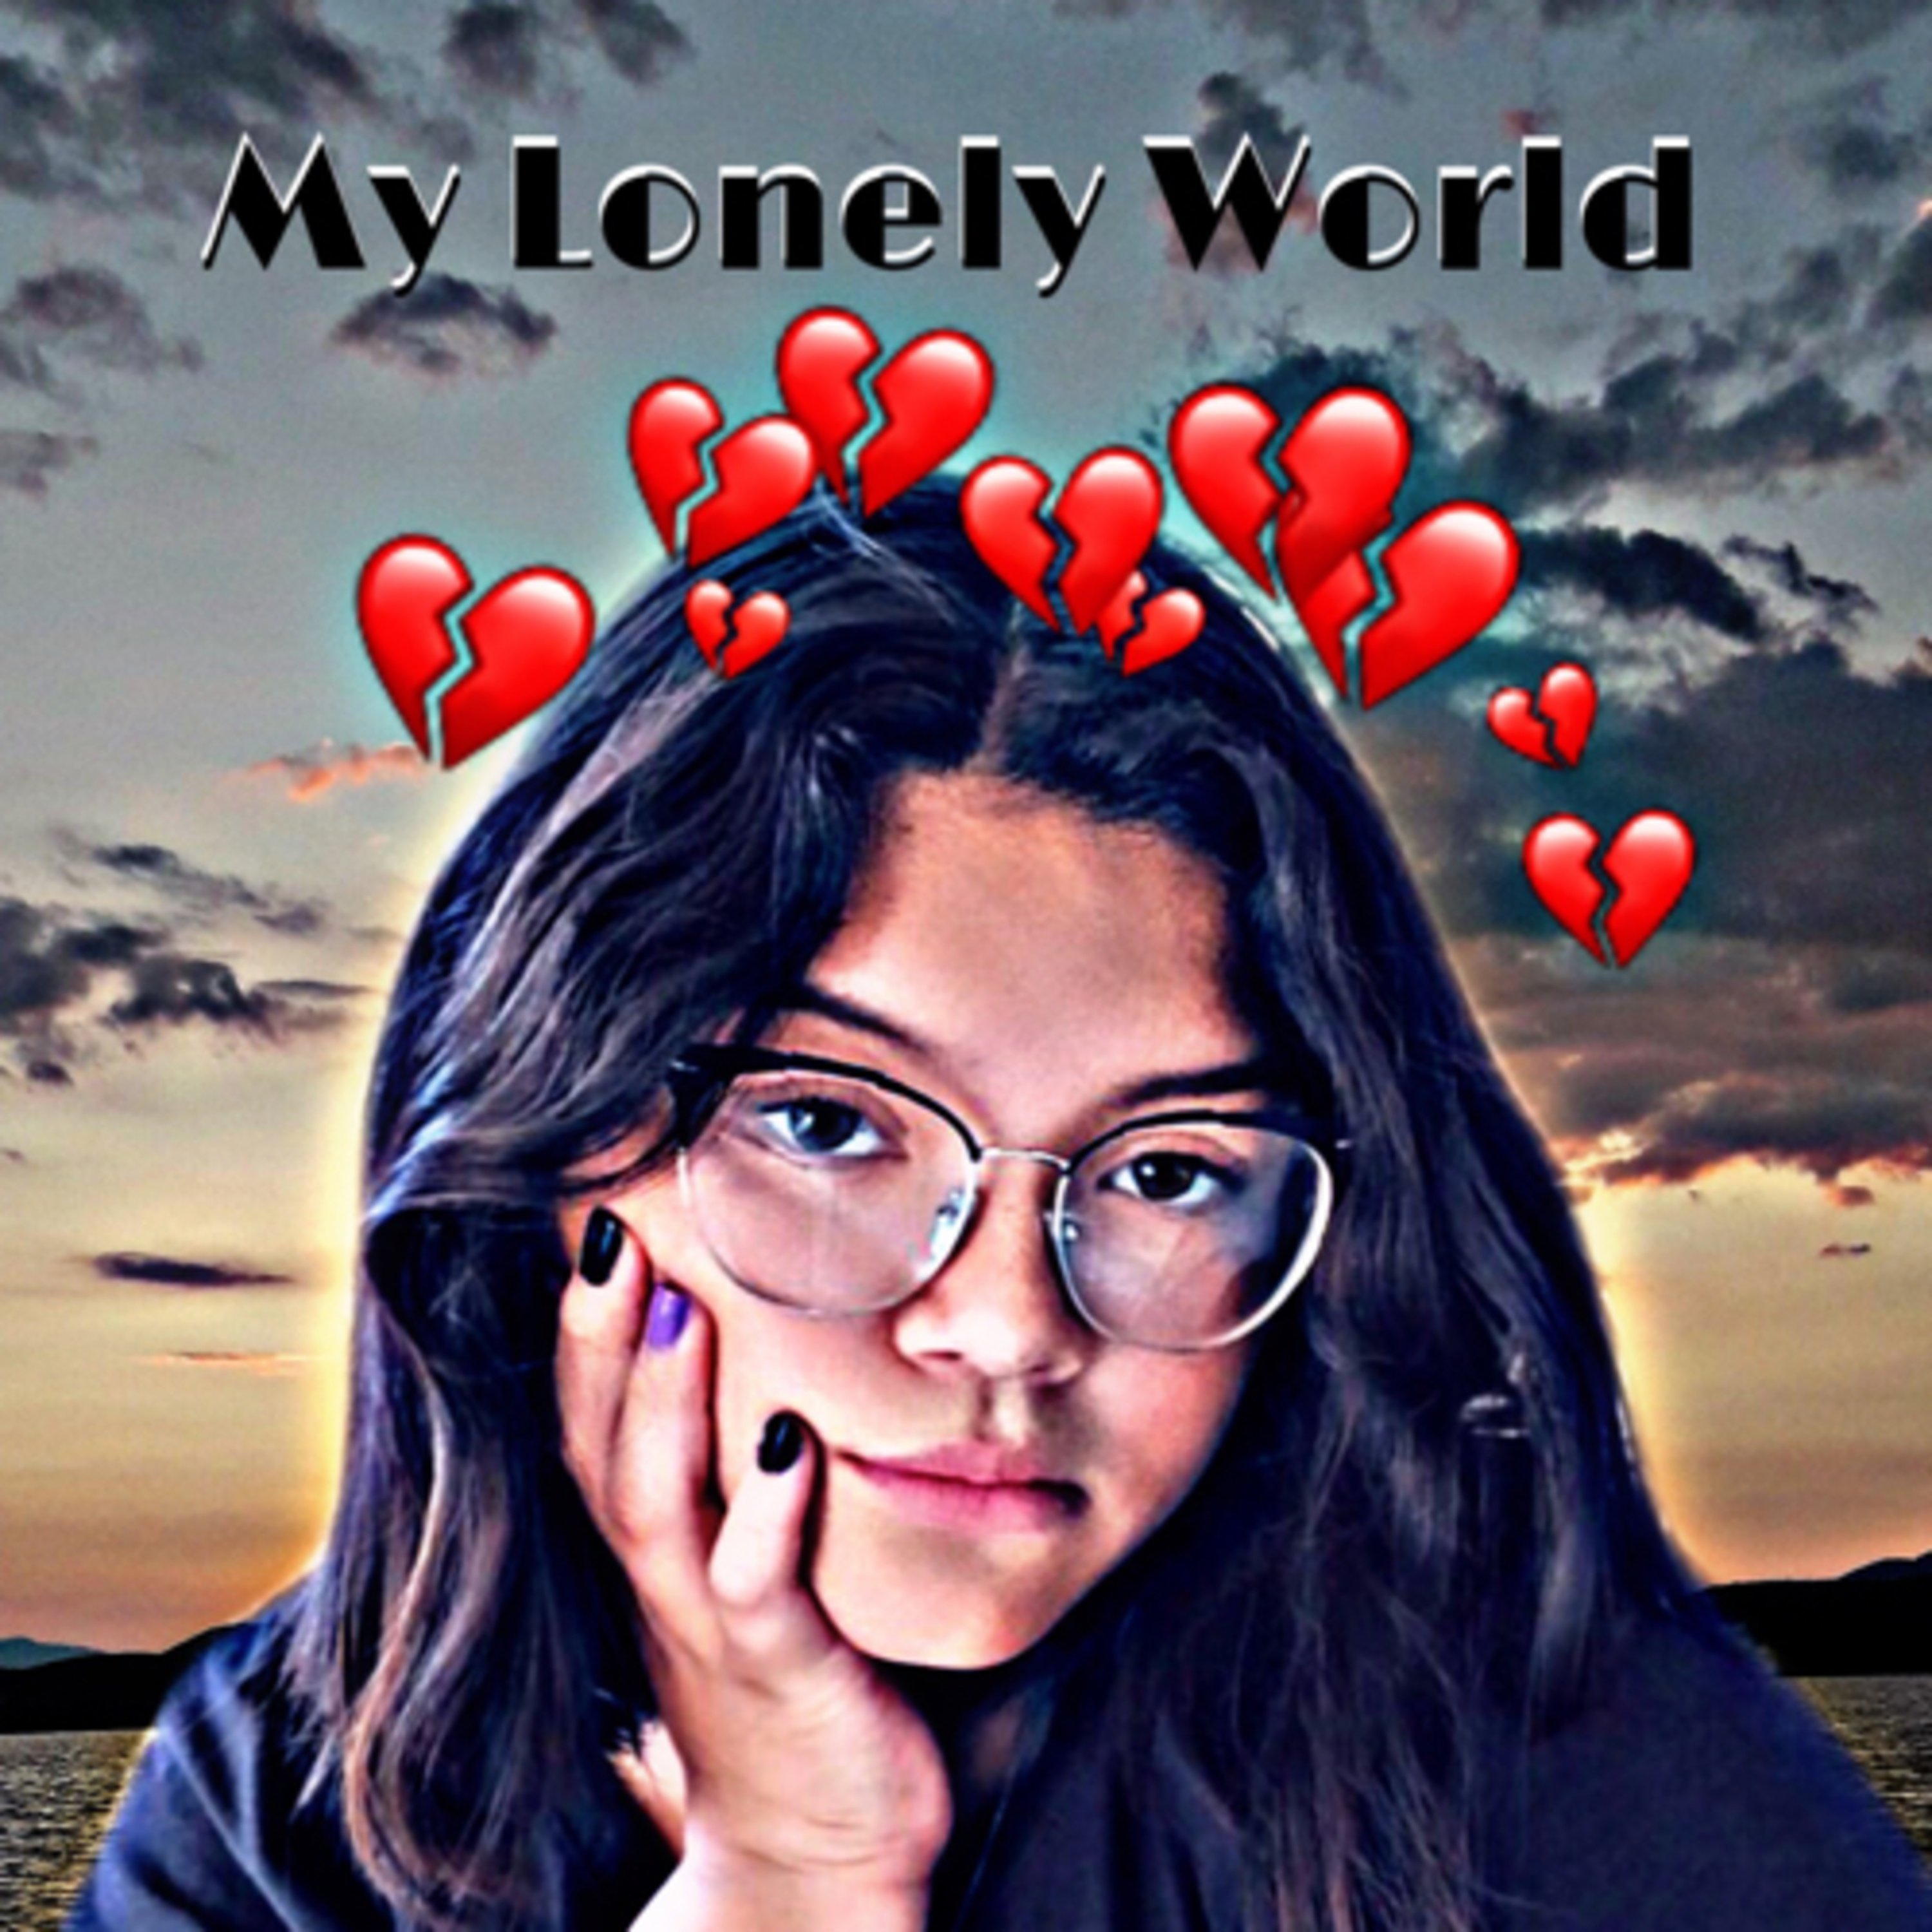 Hey Welcome To My Lonely World...